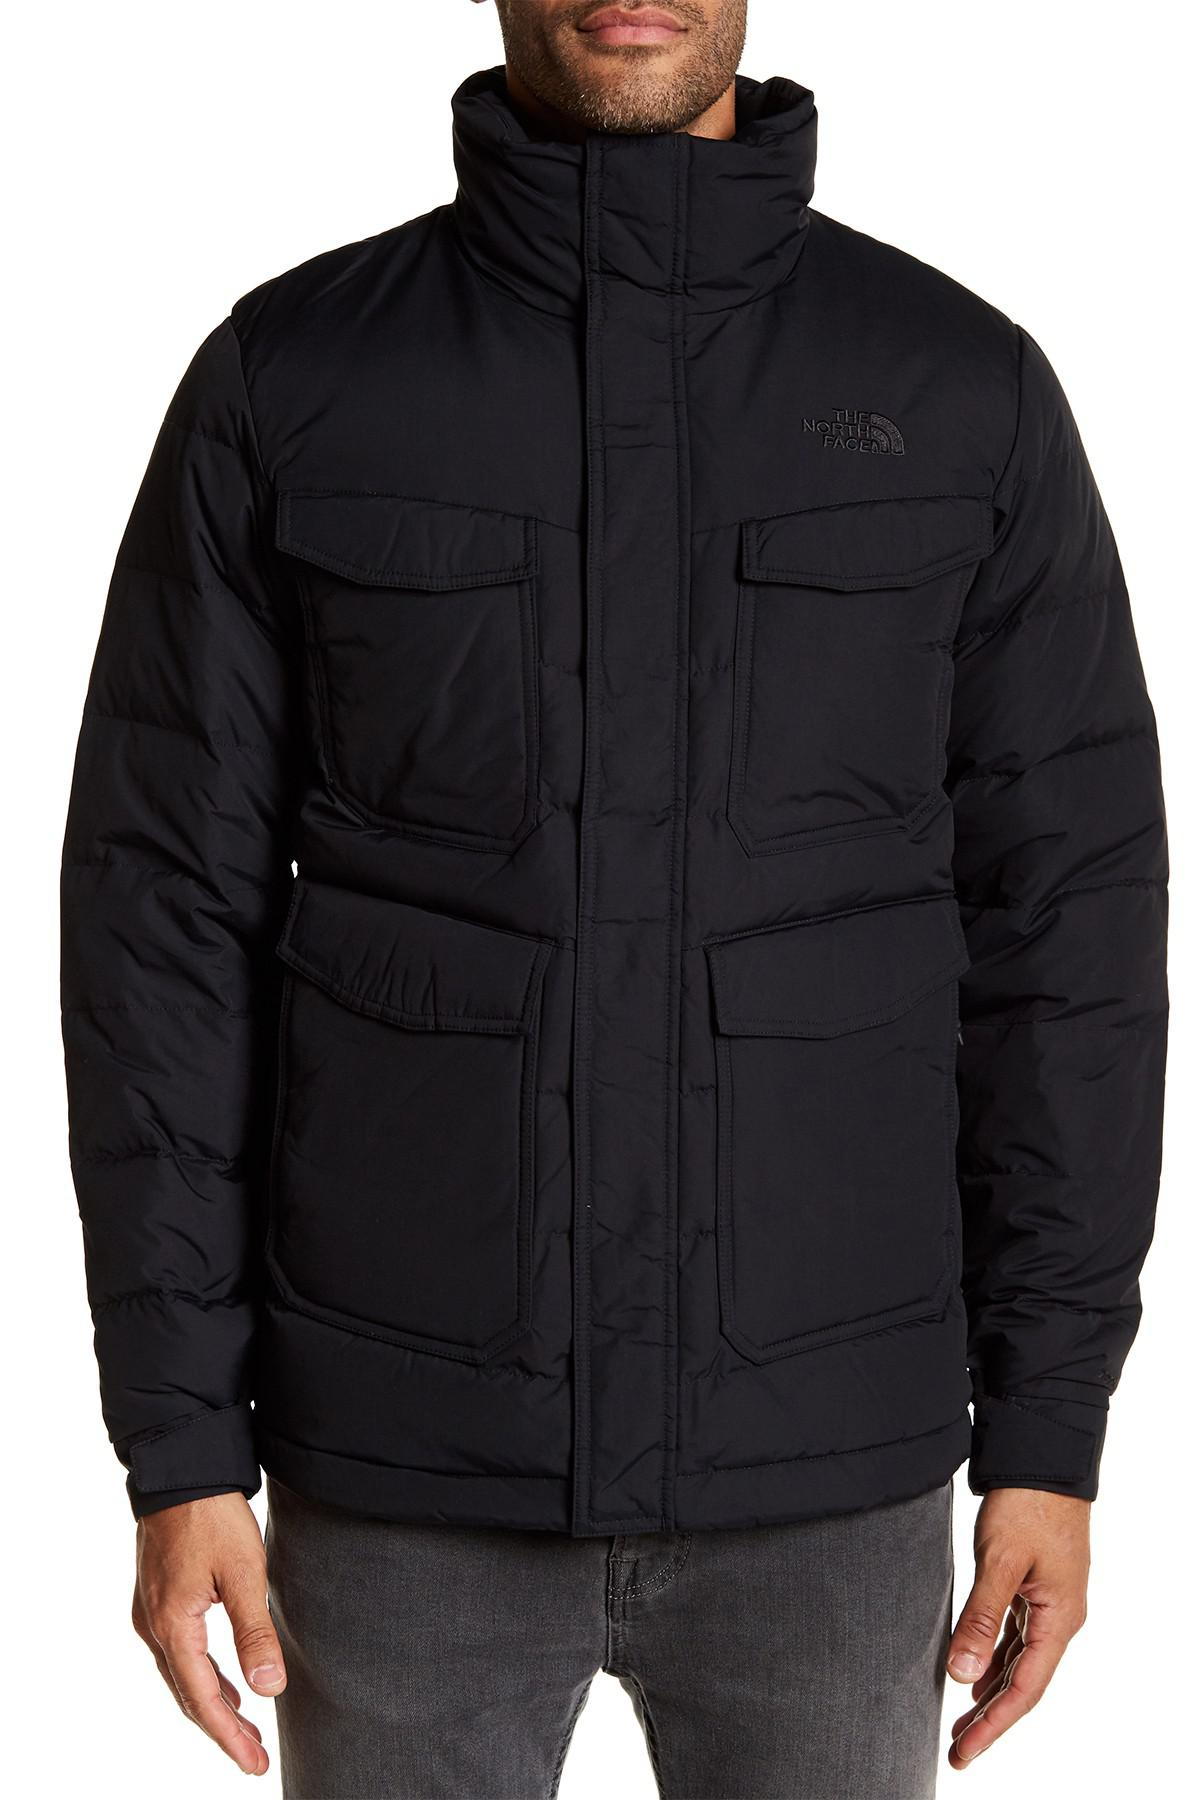 Lyst - The North Face Far Northern Jacket in Black for Men 922228745